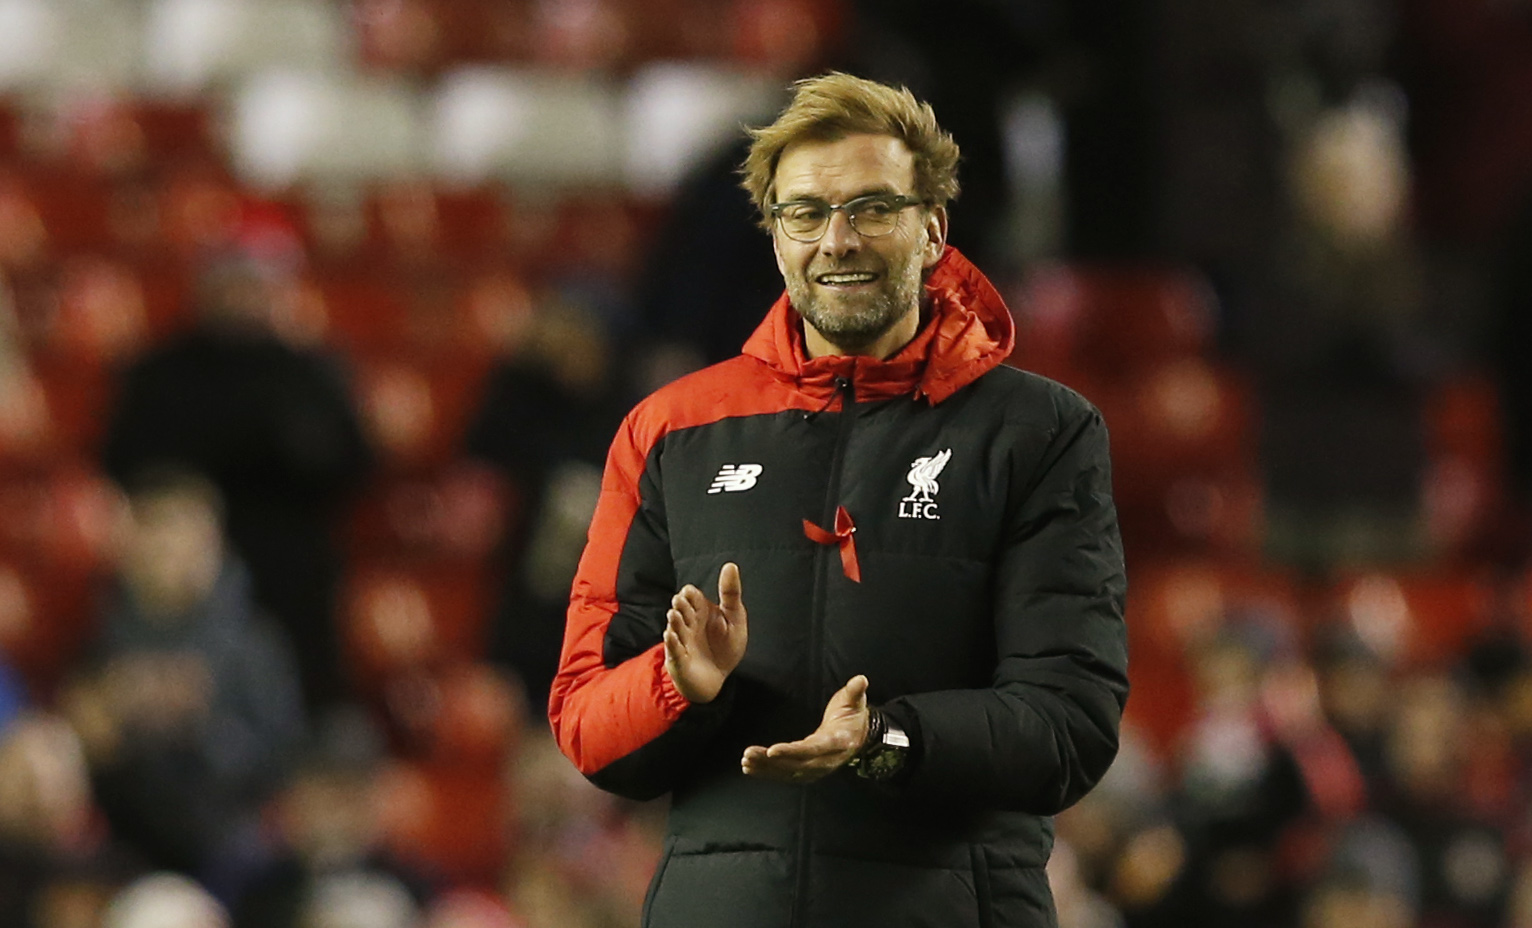 Liverpool manager Juergen Klopp celebrates at the end of the match against Swansea City during Premier League game at Anfield on November 29, 2015. Photo: Reuters